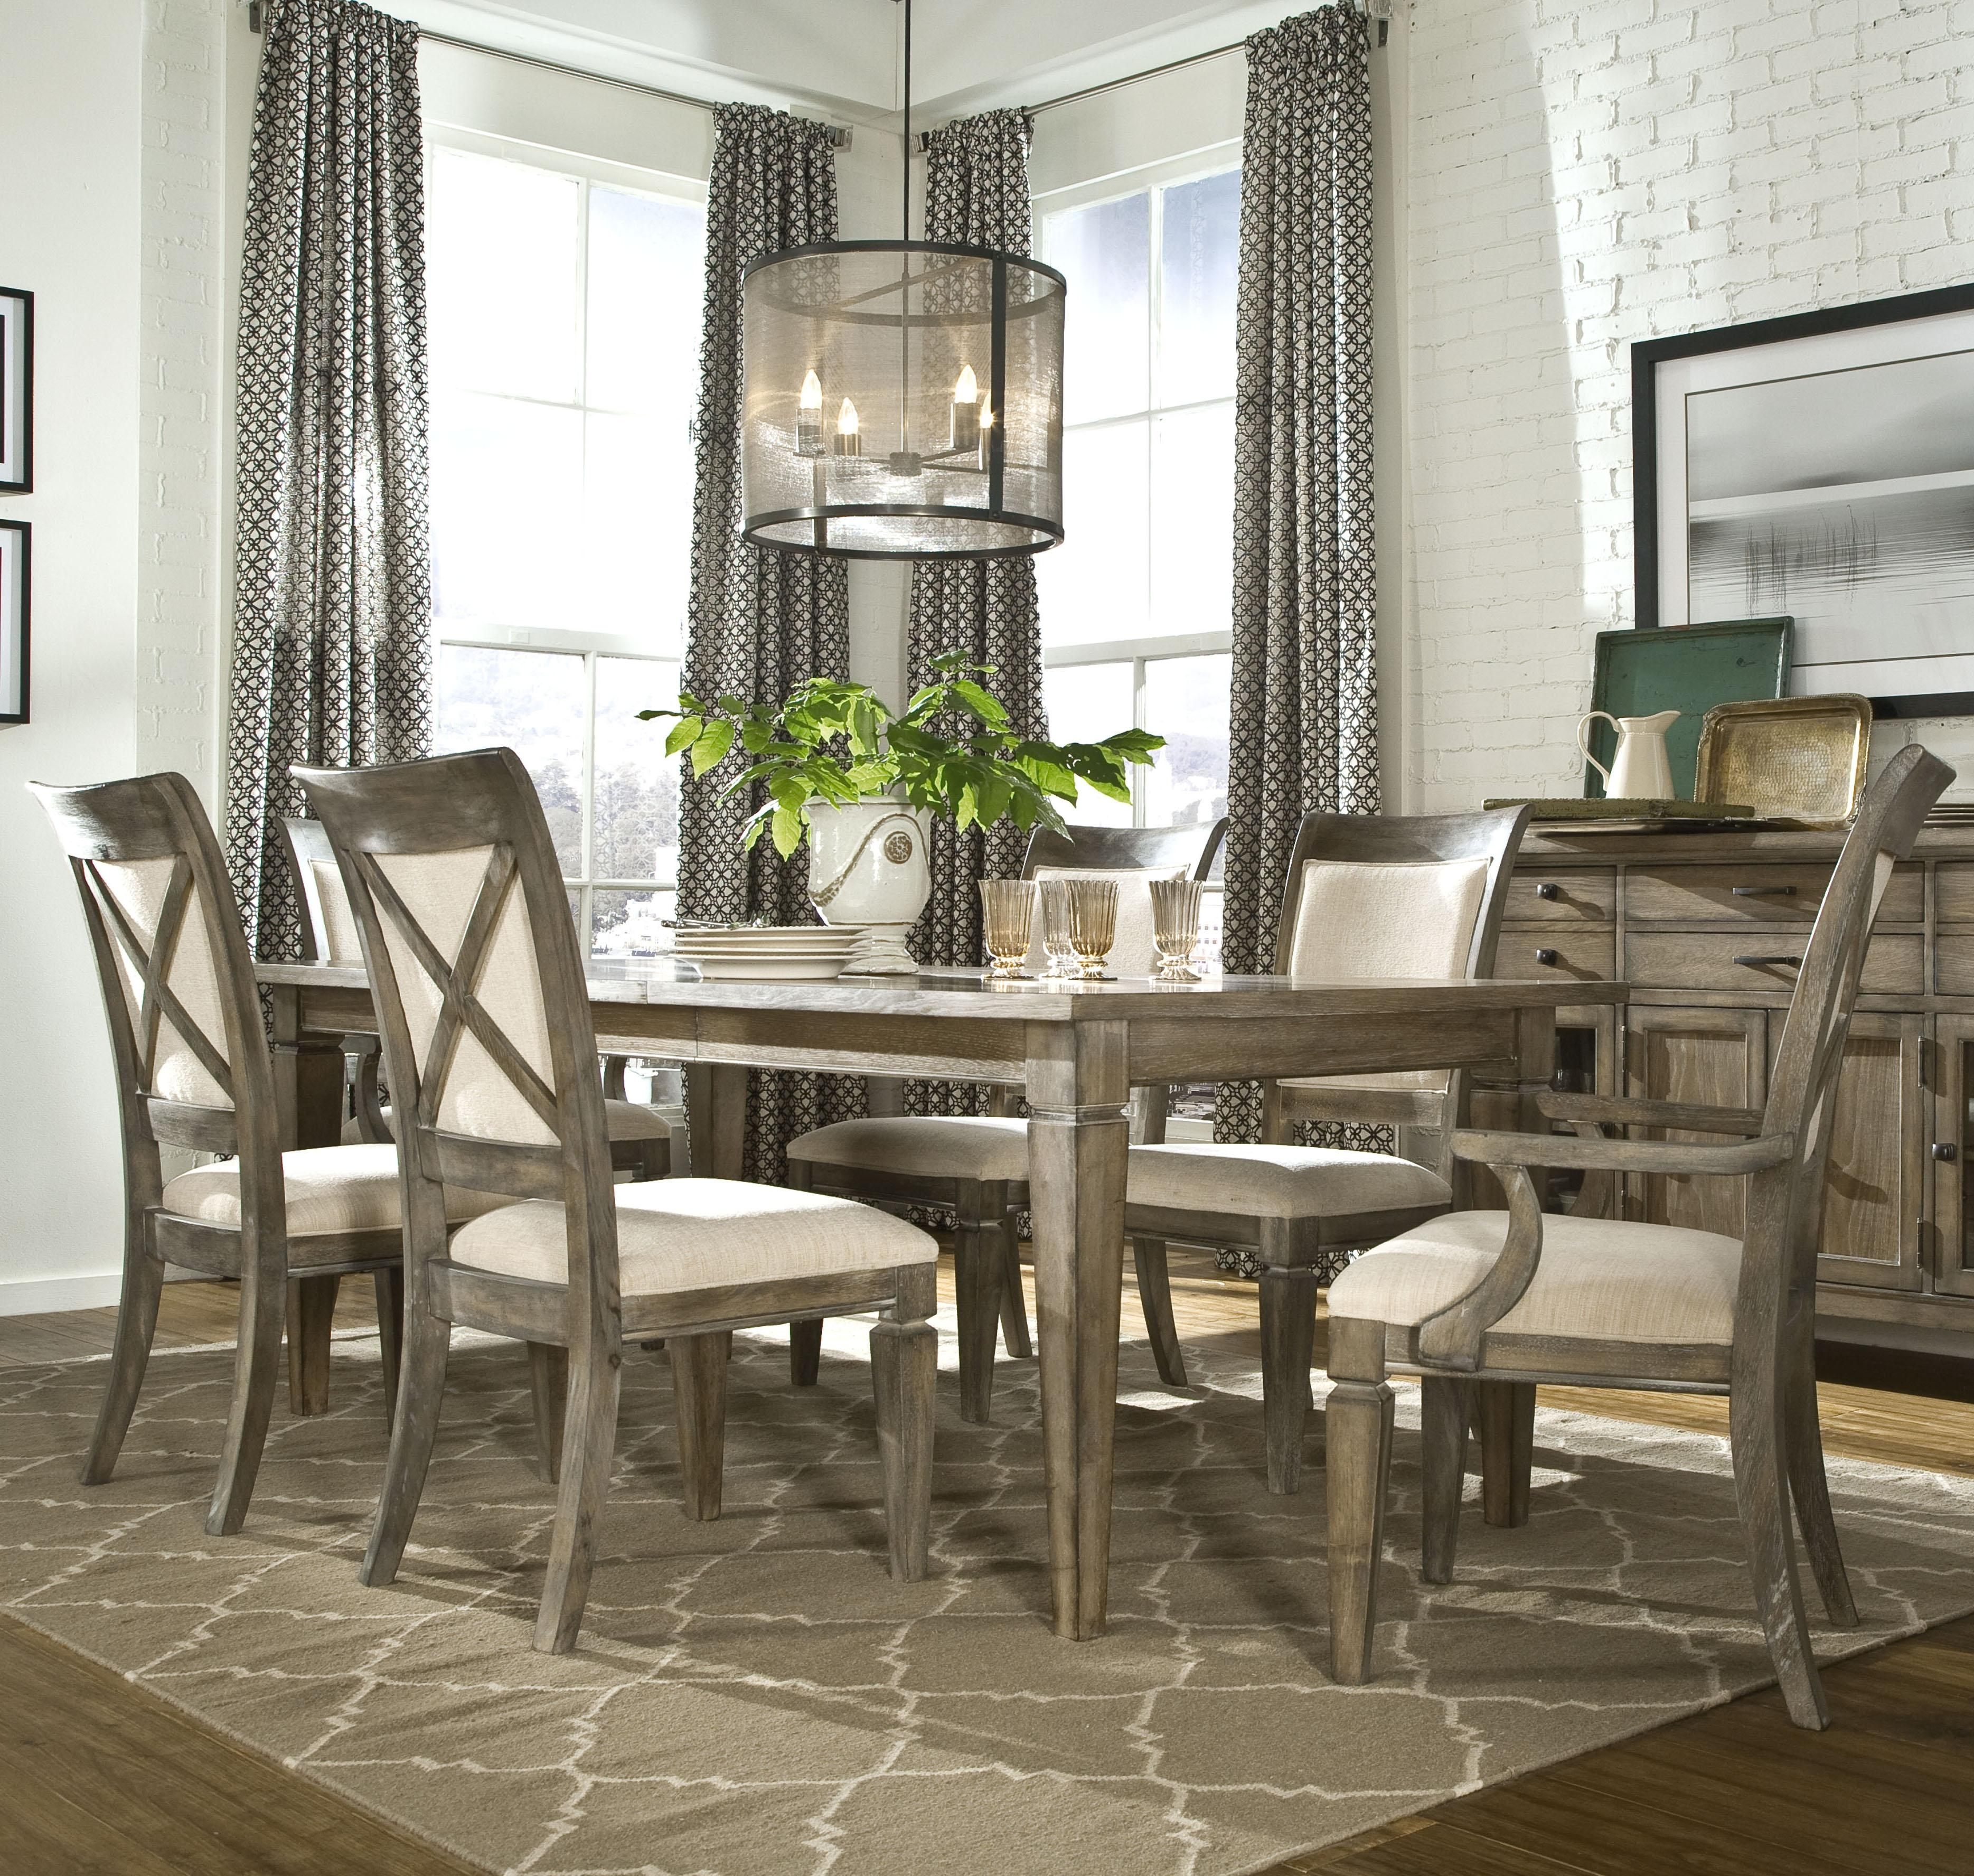 Kitchen Dinette Sets 7 Piece Dining Set Cheap 7 Piece Counter Height Regarding Most Popular Jaxon 7 Piece Rectangle Dining Sets With Wood Chairs (View 20 of 20)